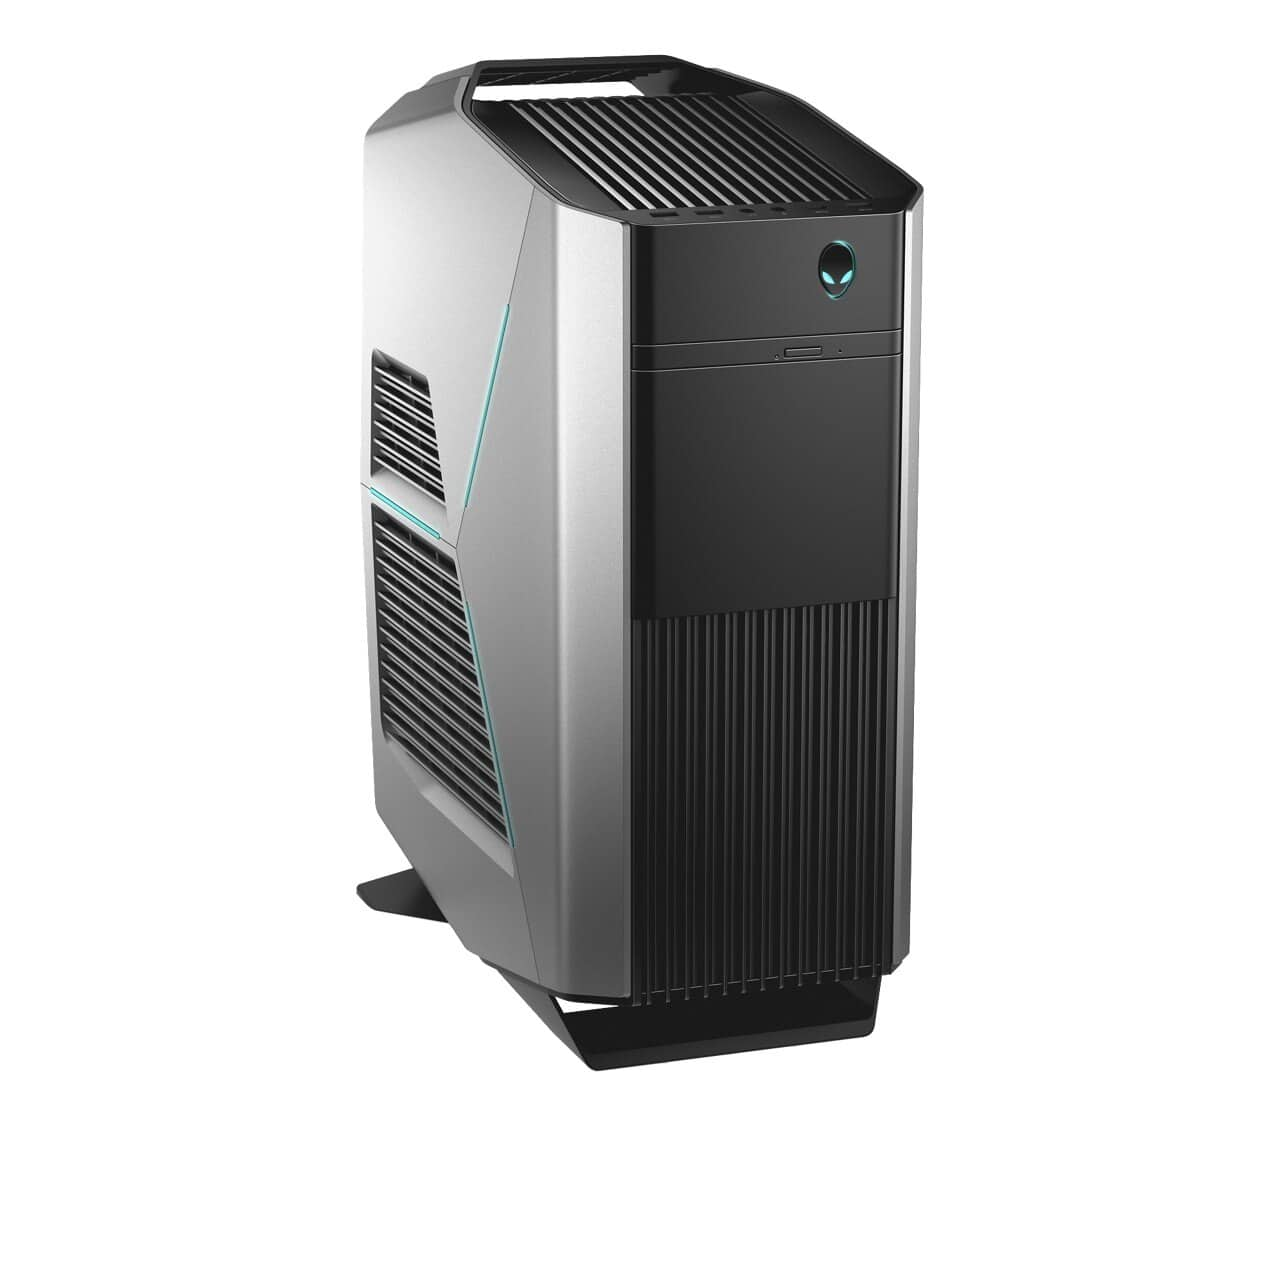 Alienware Aurora R8 Gaming Desktop: i7-9700, 16GB DDR4 2933, 512GB PCIe SSD, Radeon RX 5700, 850W PSU /w Liquid Cooling @ $1080 + $215.90 back in Points